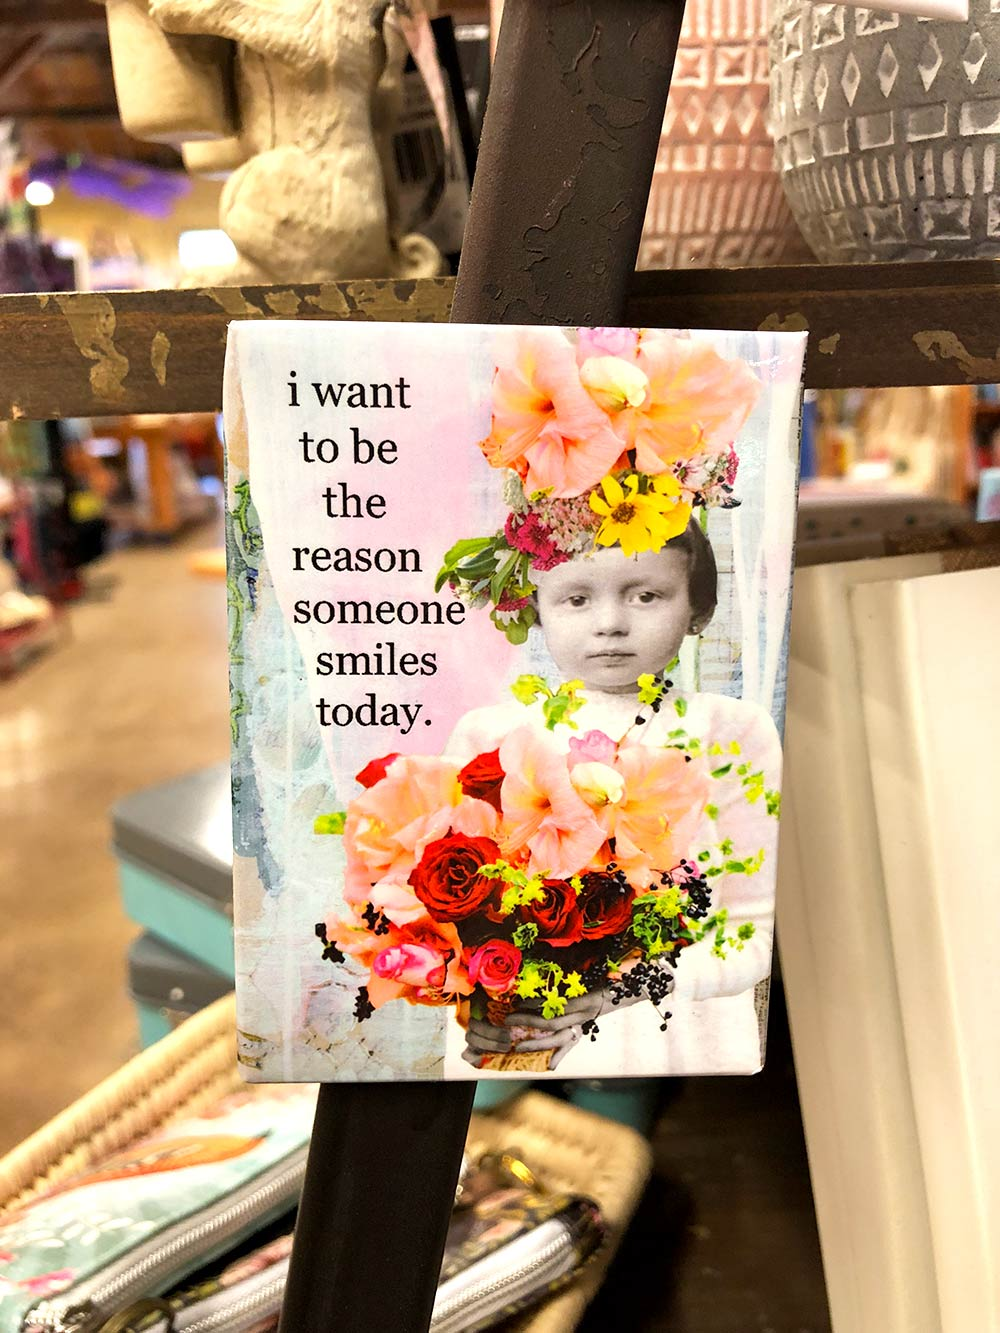 i want to be the reason someone smiles